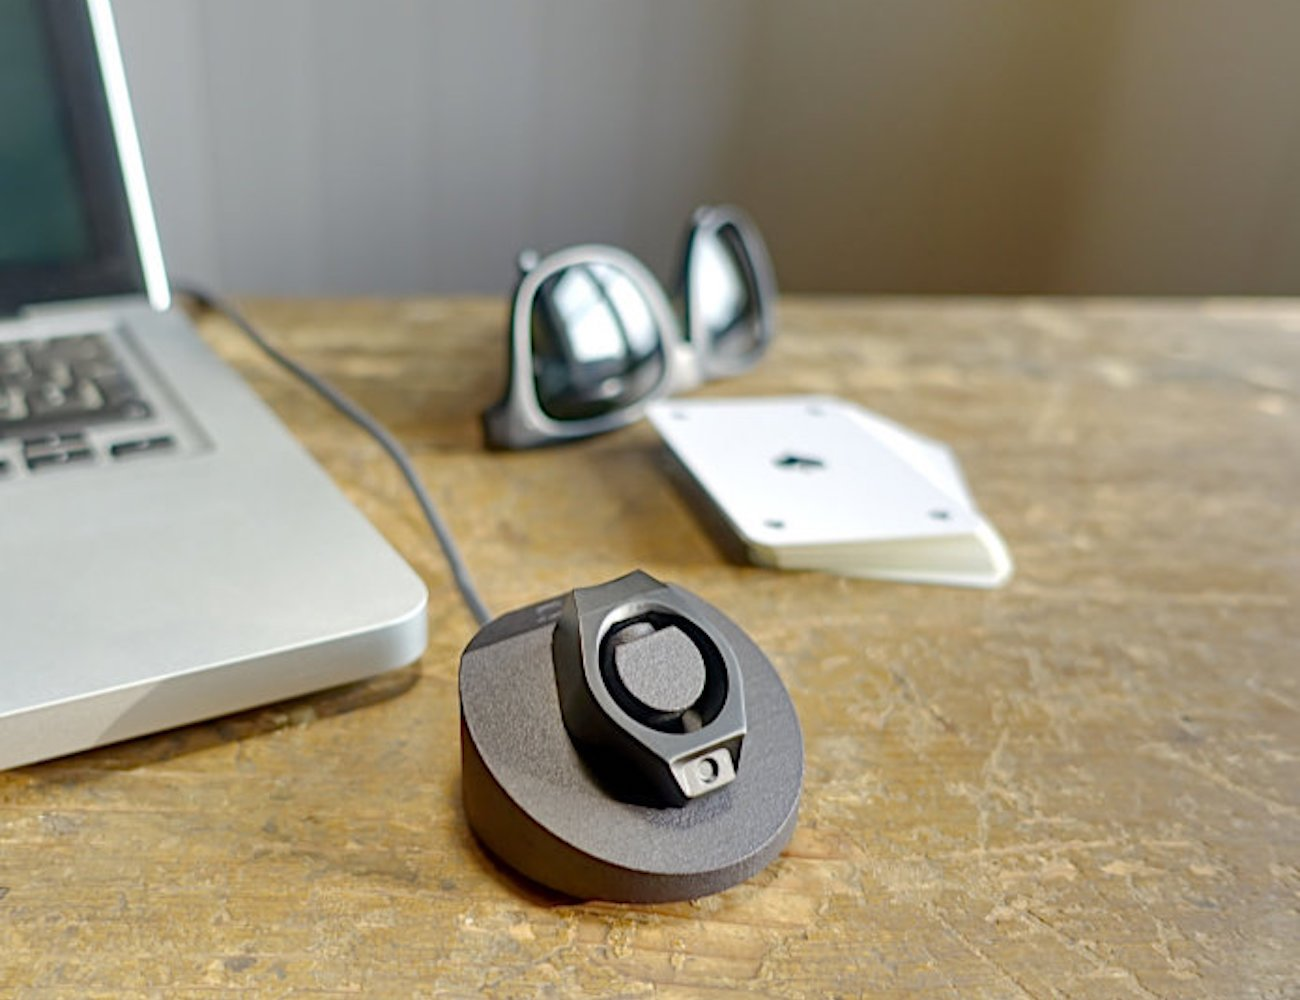 Padrone Ring Wearable Ring Mouse » Gadget Flow